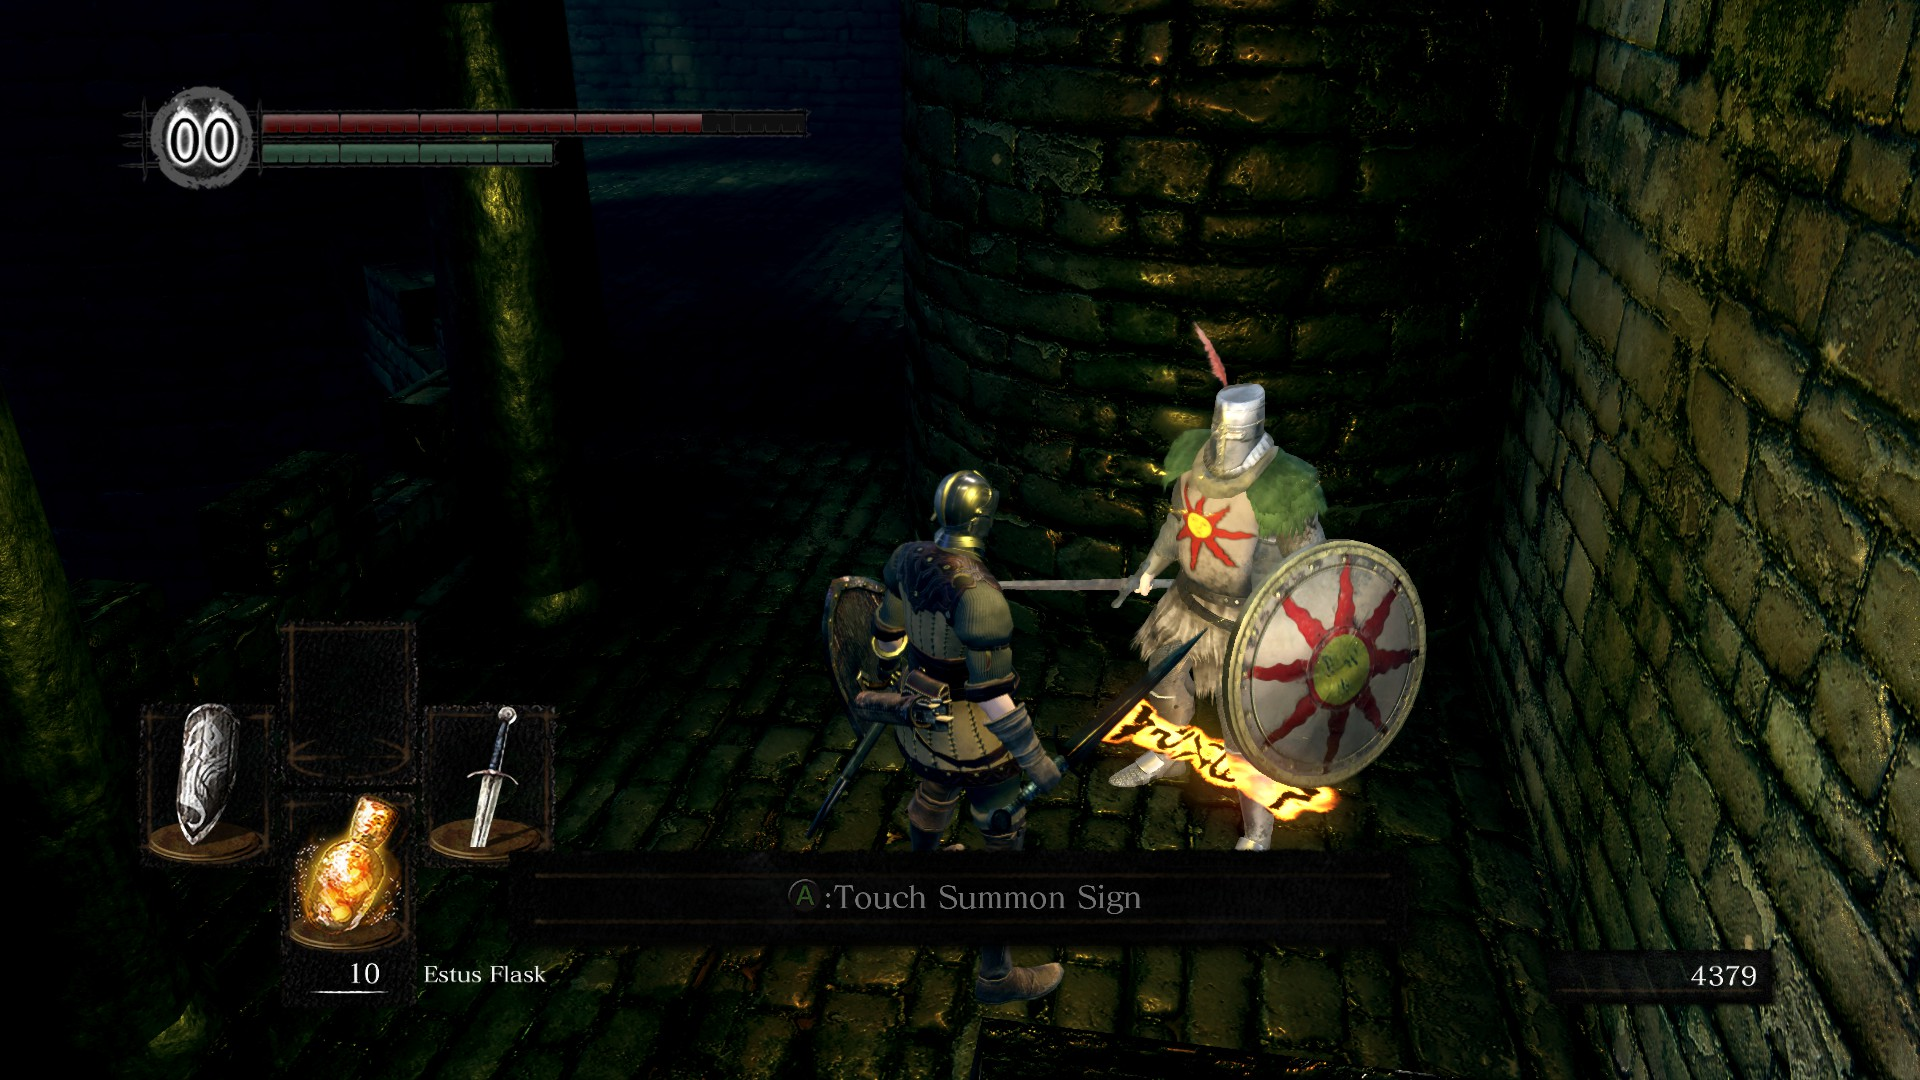 Dark Souls Gaping Dragon Boss Guide - How to Defeat the Gaping